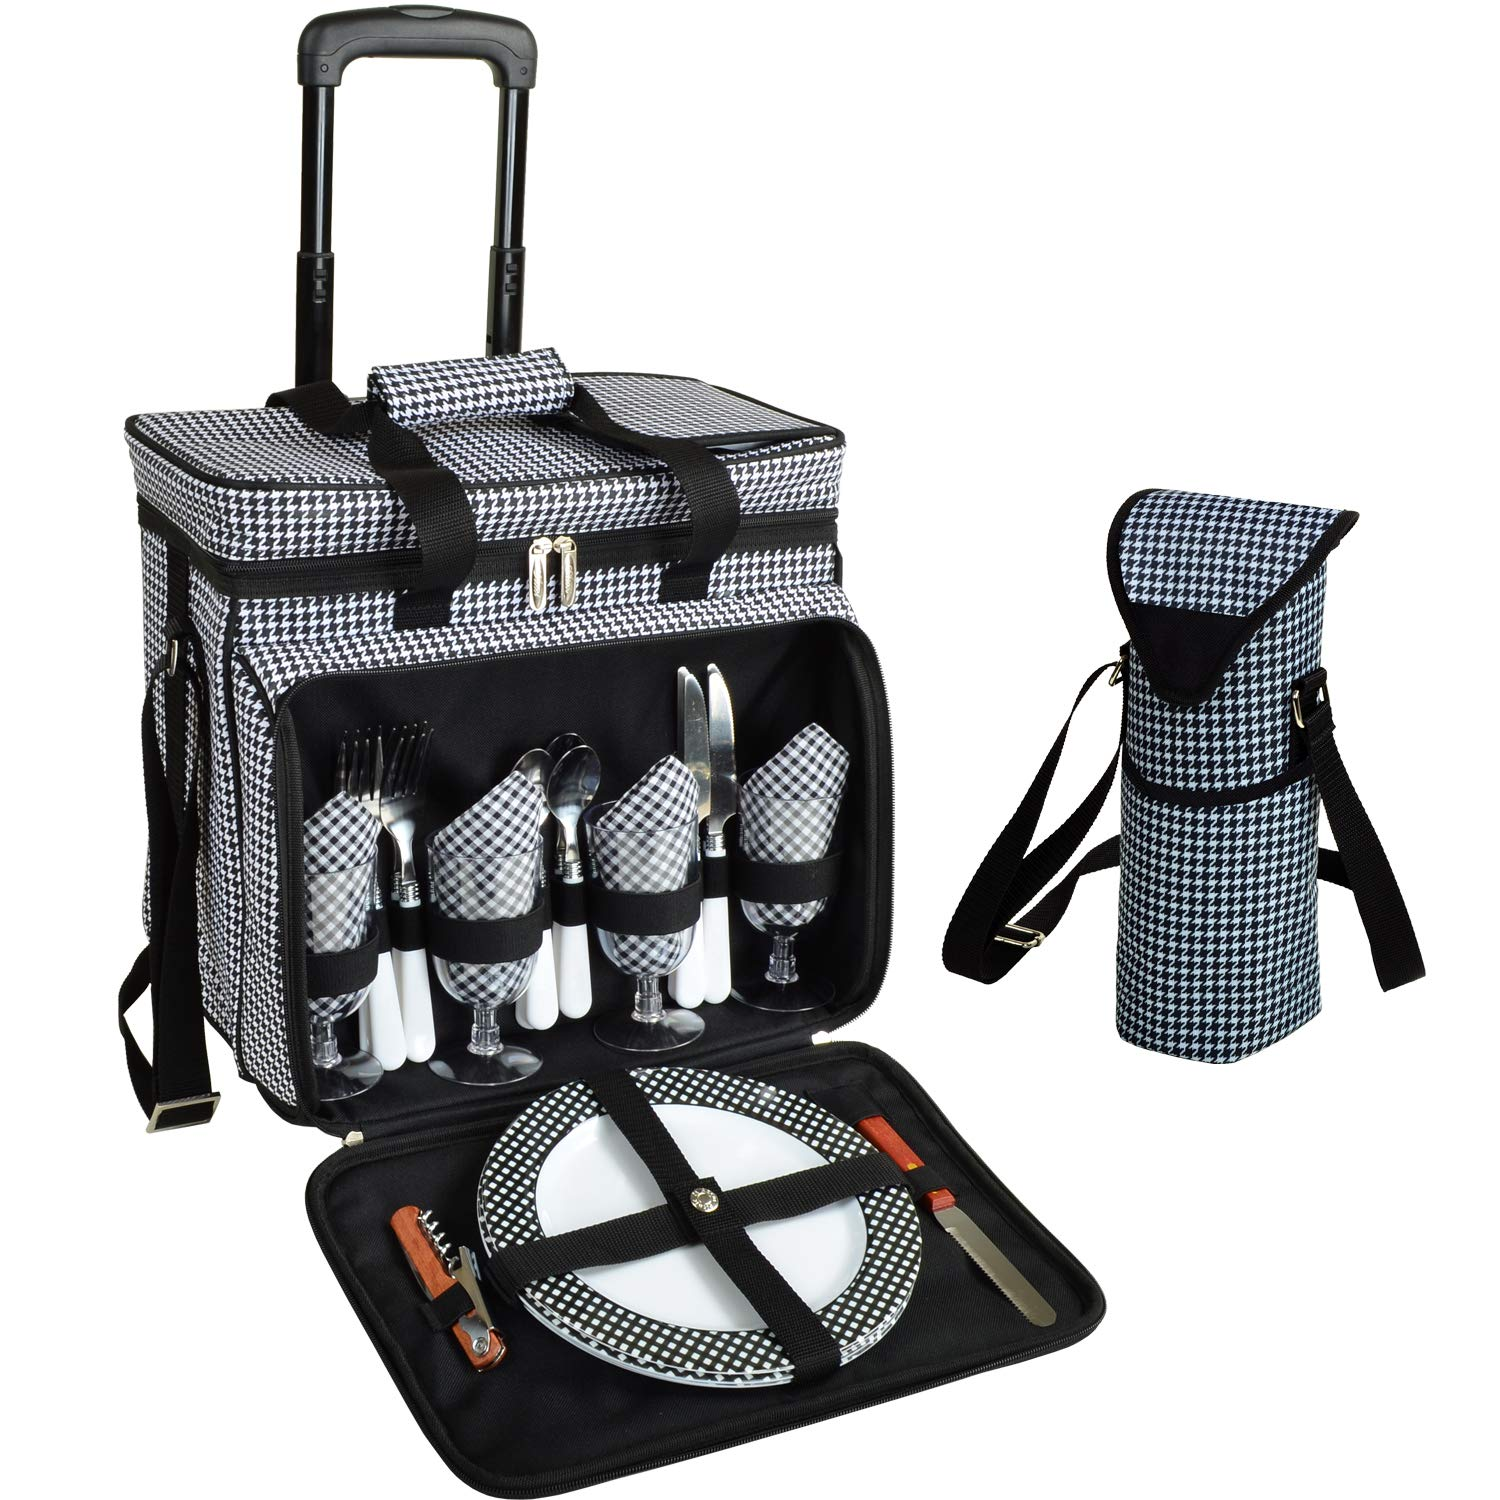 Picnic at Ascot Original Equipped Cooler on Wheels for 4 - Extra Wine Tote - Designed and Assembled in California - Houndstooth by Picnic at Ascot (Image #1)